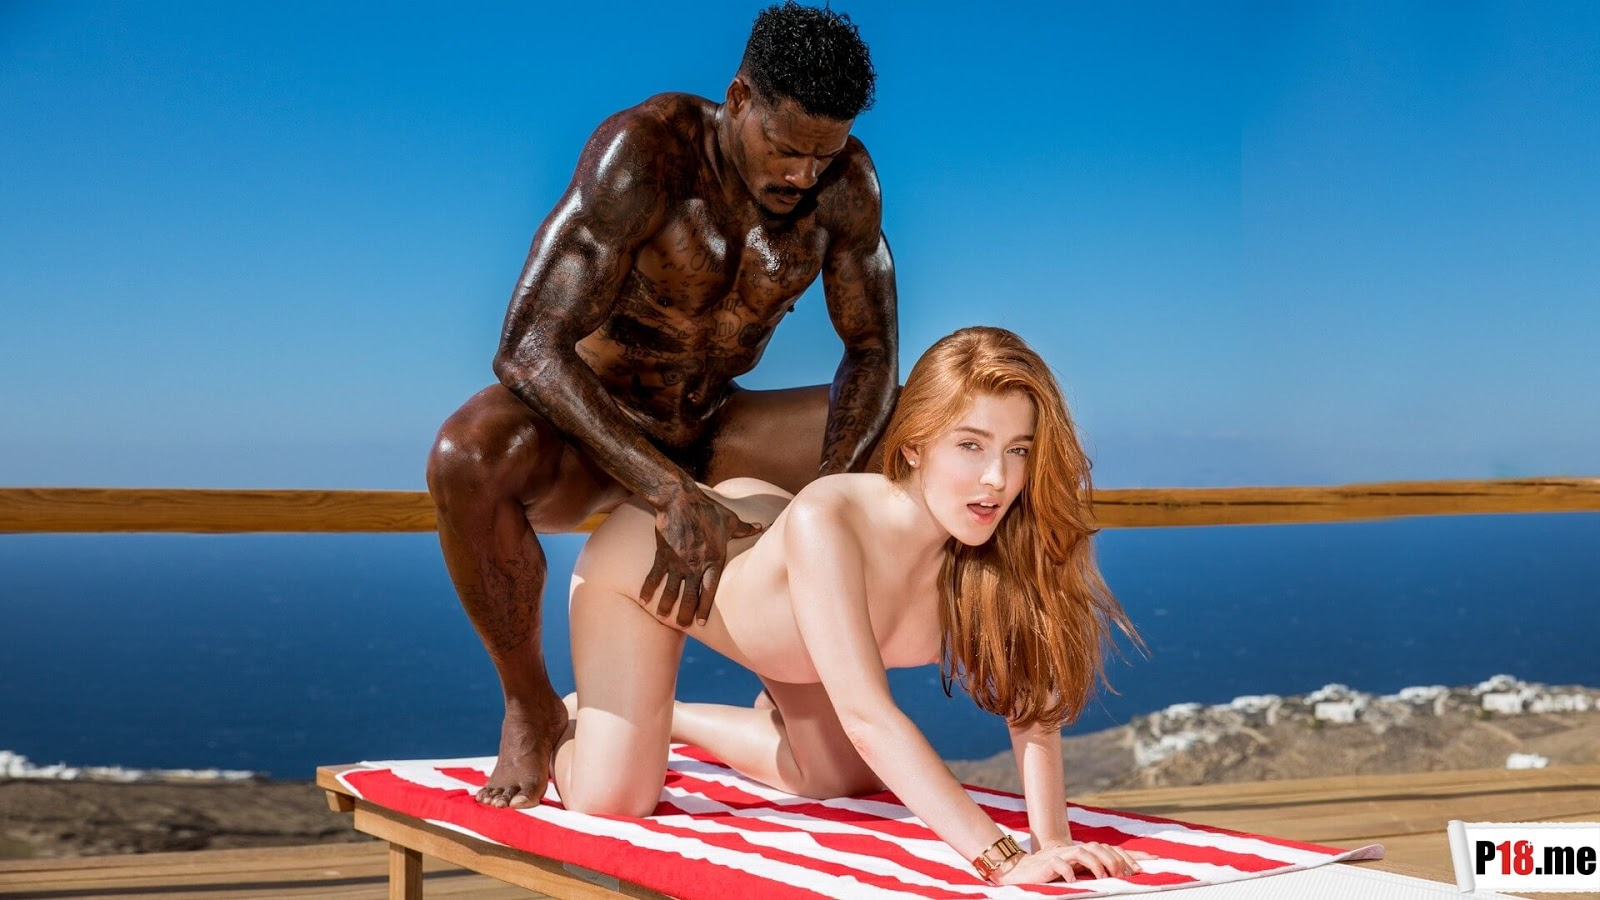 Free Streaming & Download Blacked - Jia Lissa - The Real Thing XXX Porn Videos